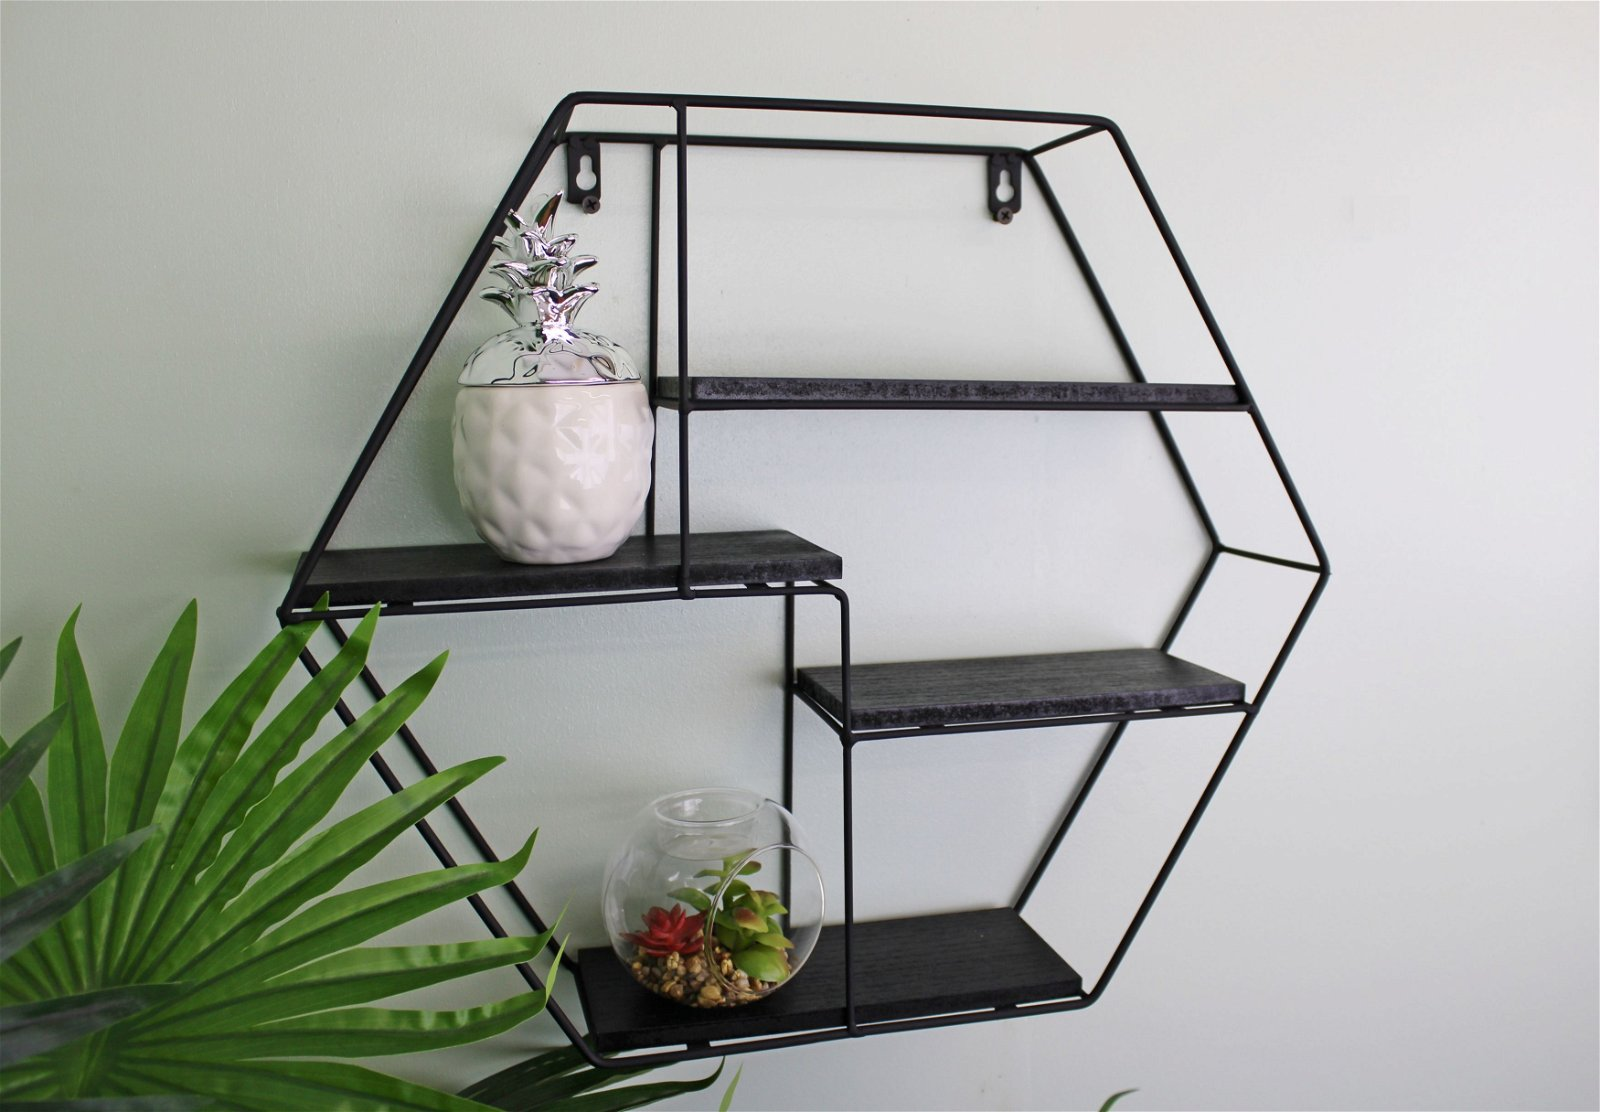 Hexagonal Wall Shelf in Black Metal with 4 Shelves